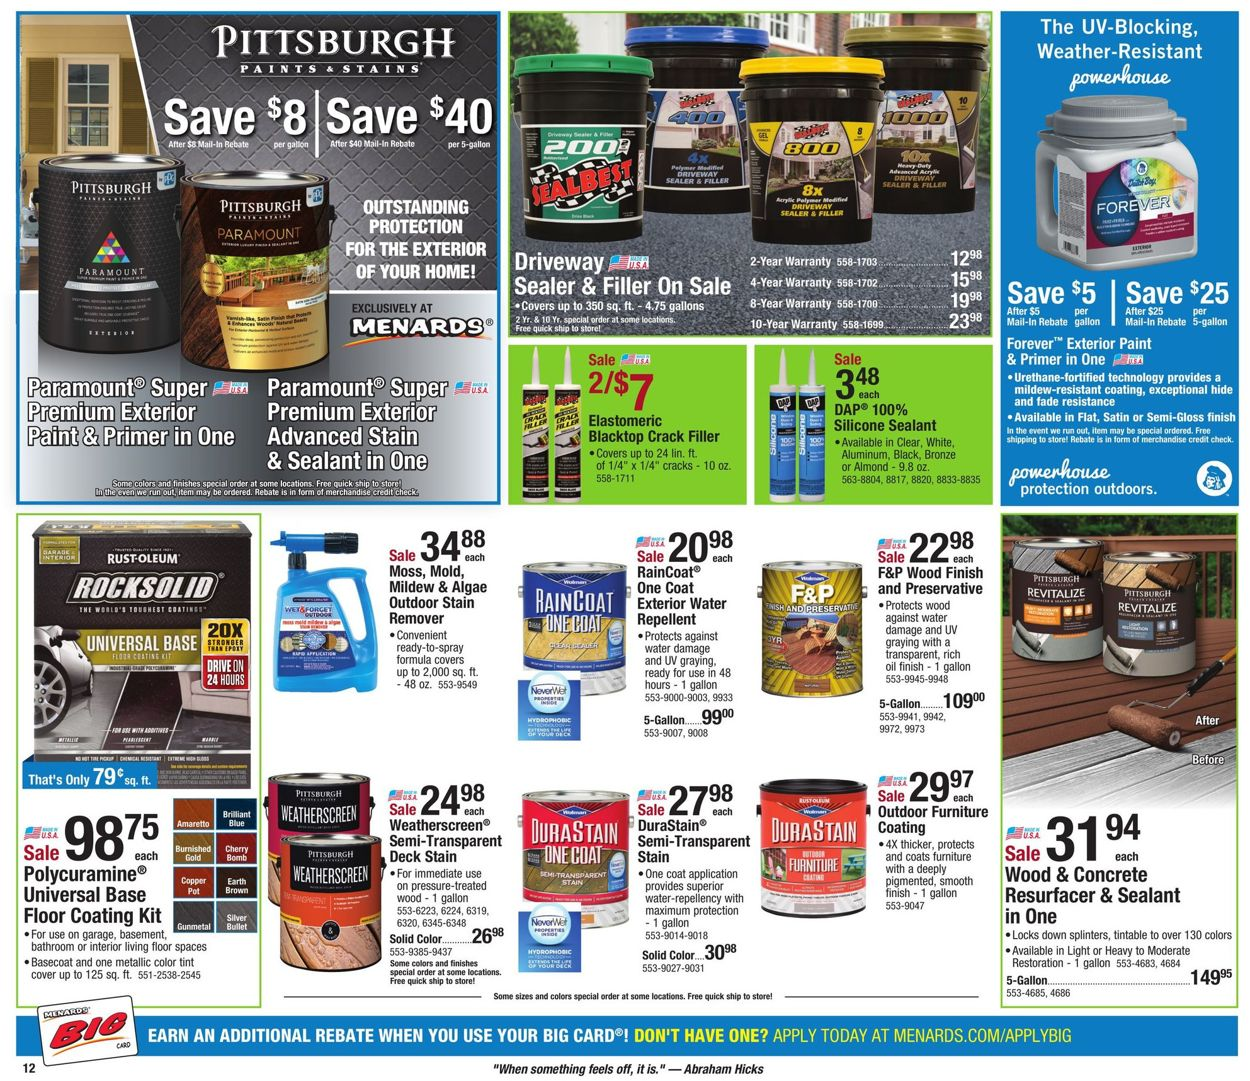 Menards Current weekly ad 06/09 - 06/15/2019 [15] - frequent